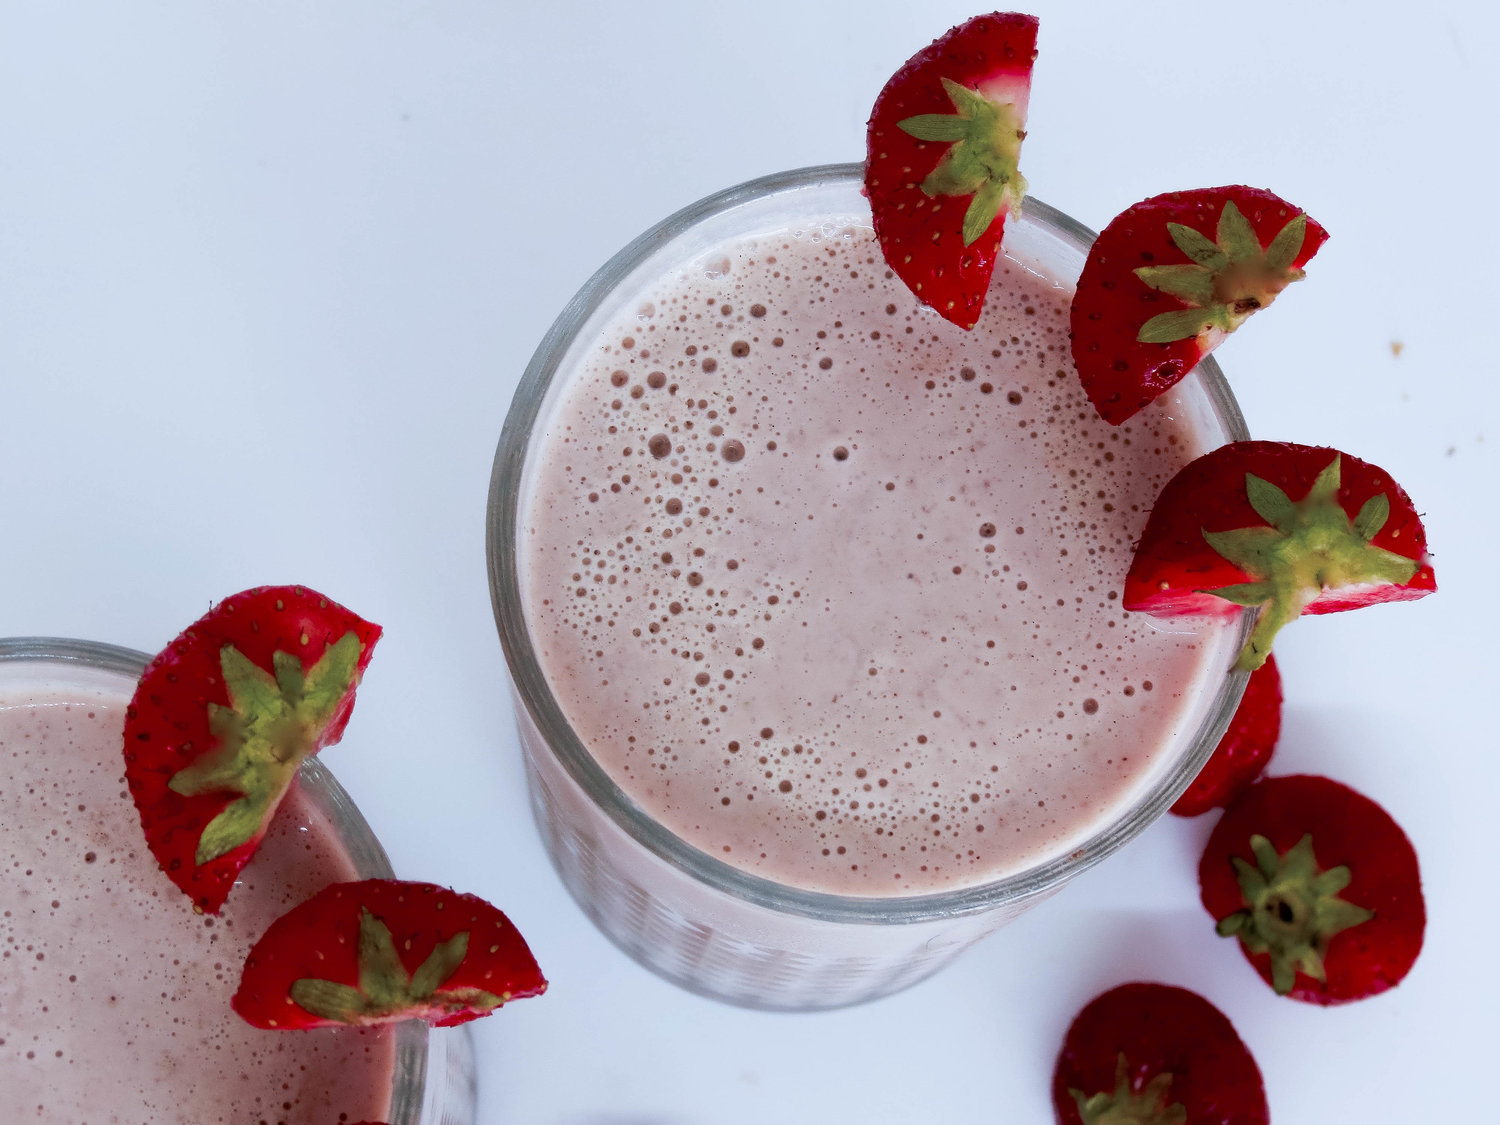 Strawberry and Cream Smoothie